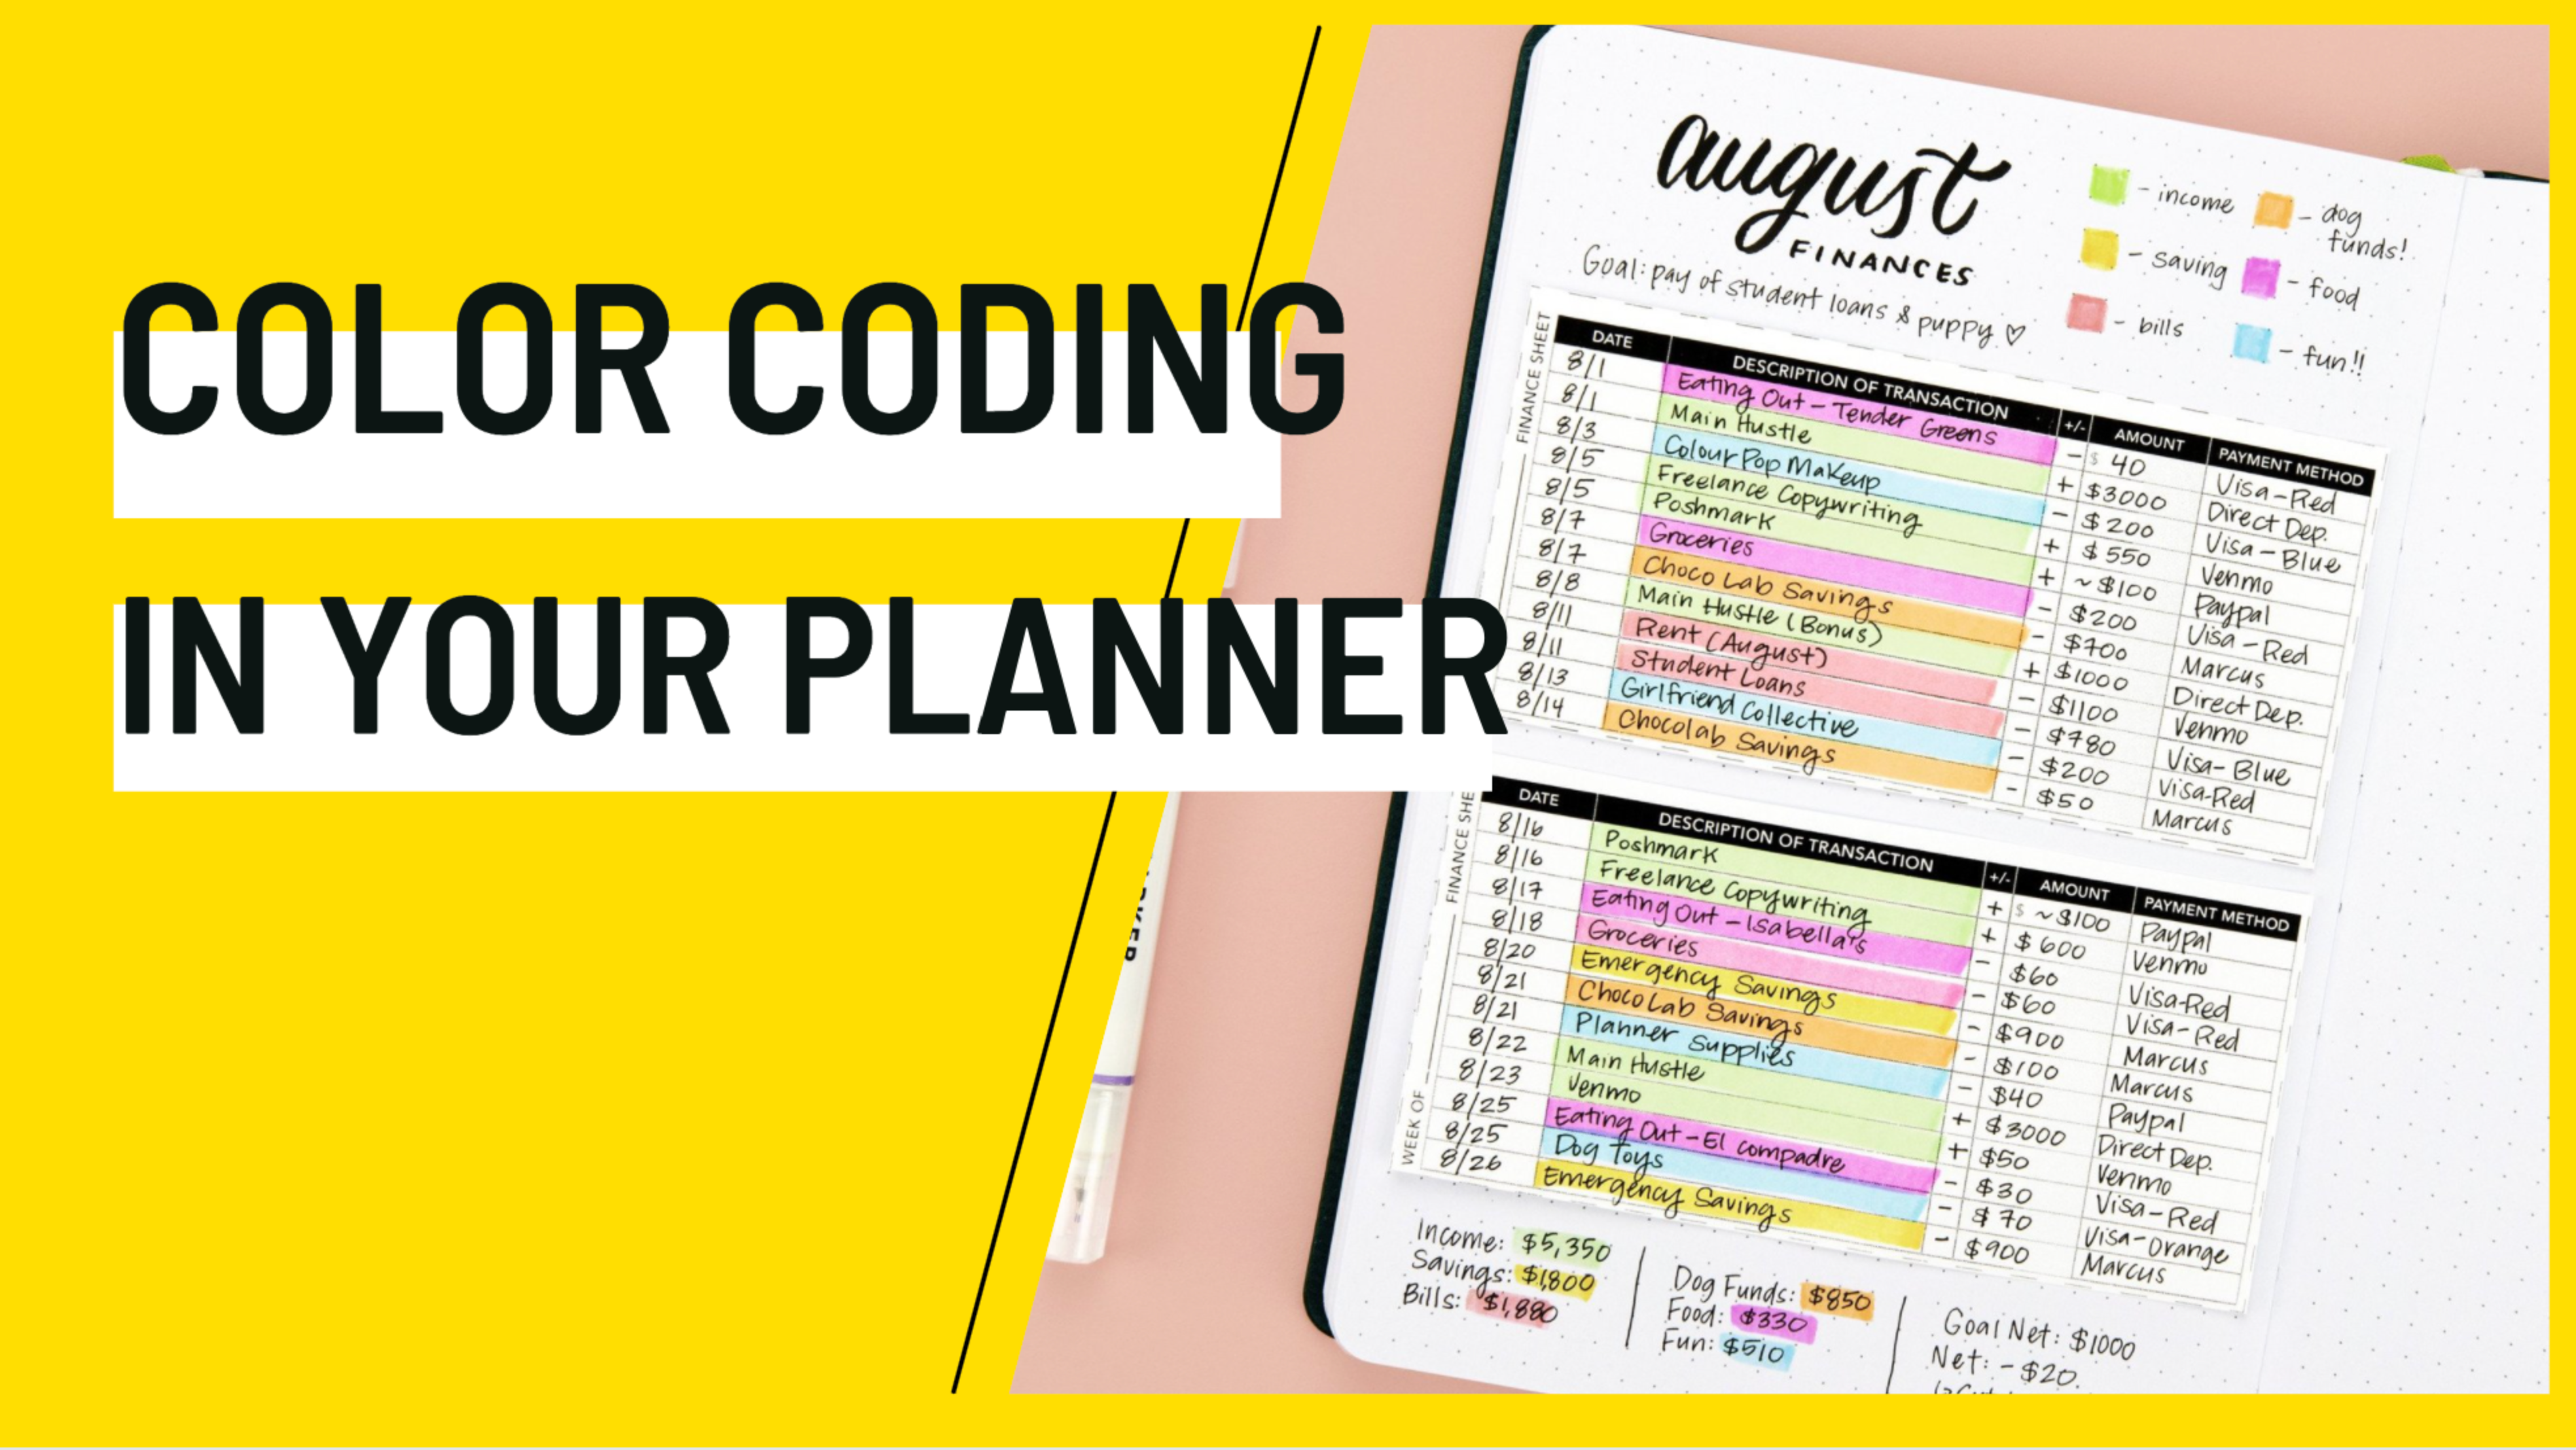 Color-coding in your Planner